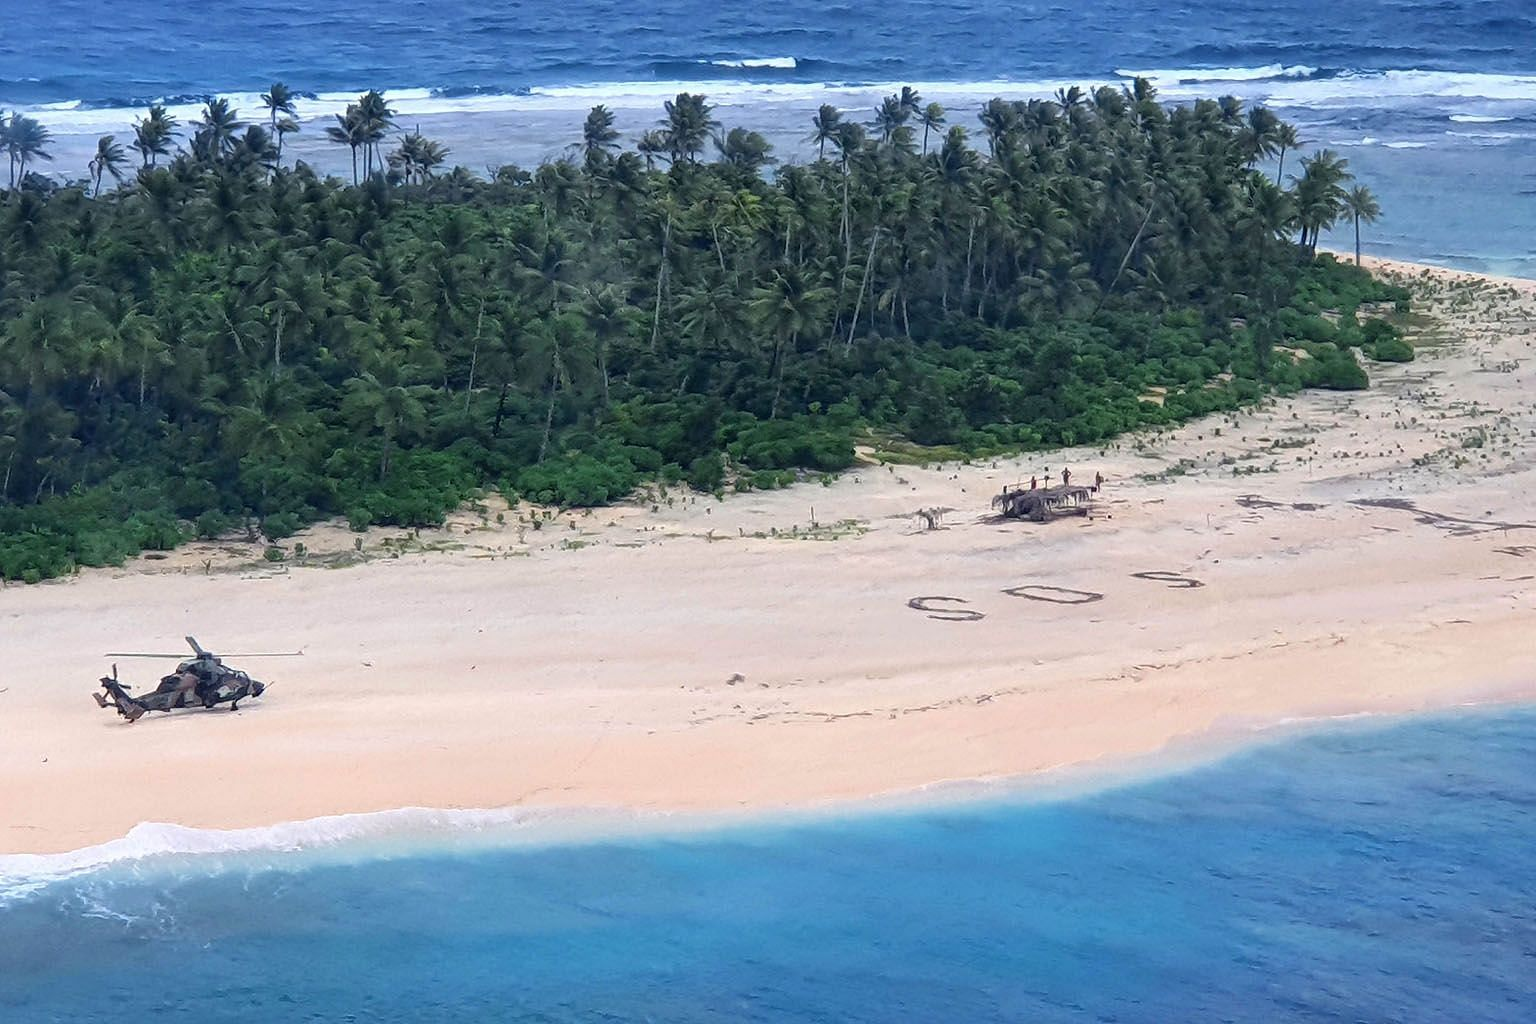 Three Micronesian sailors stranded on a remote Pacific island drew a giant SOS message in the sand to attract the attention of rescuers, who found them three days after they went missing at sea. Australian and United States aircraft located the men o